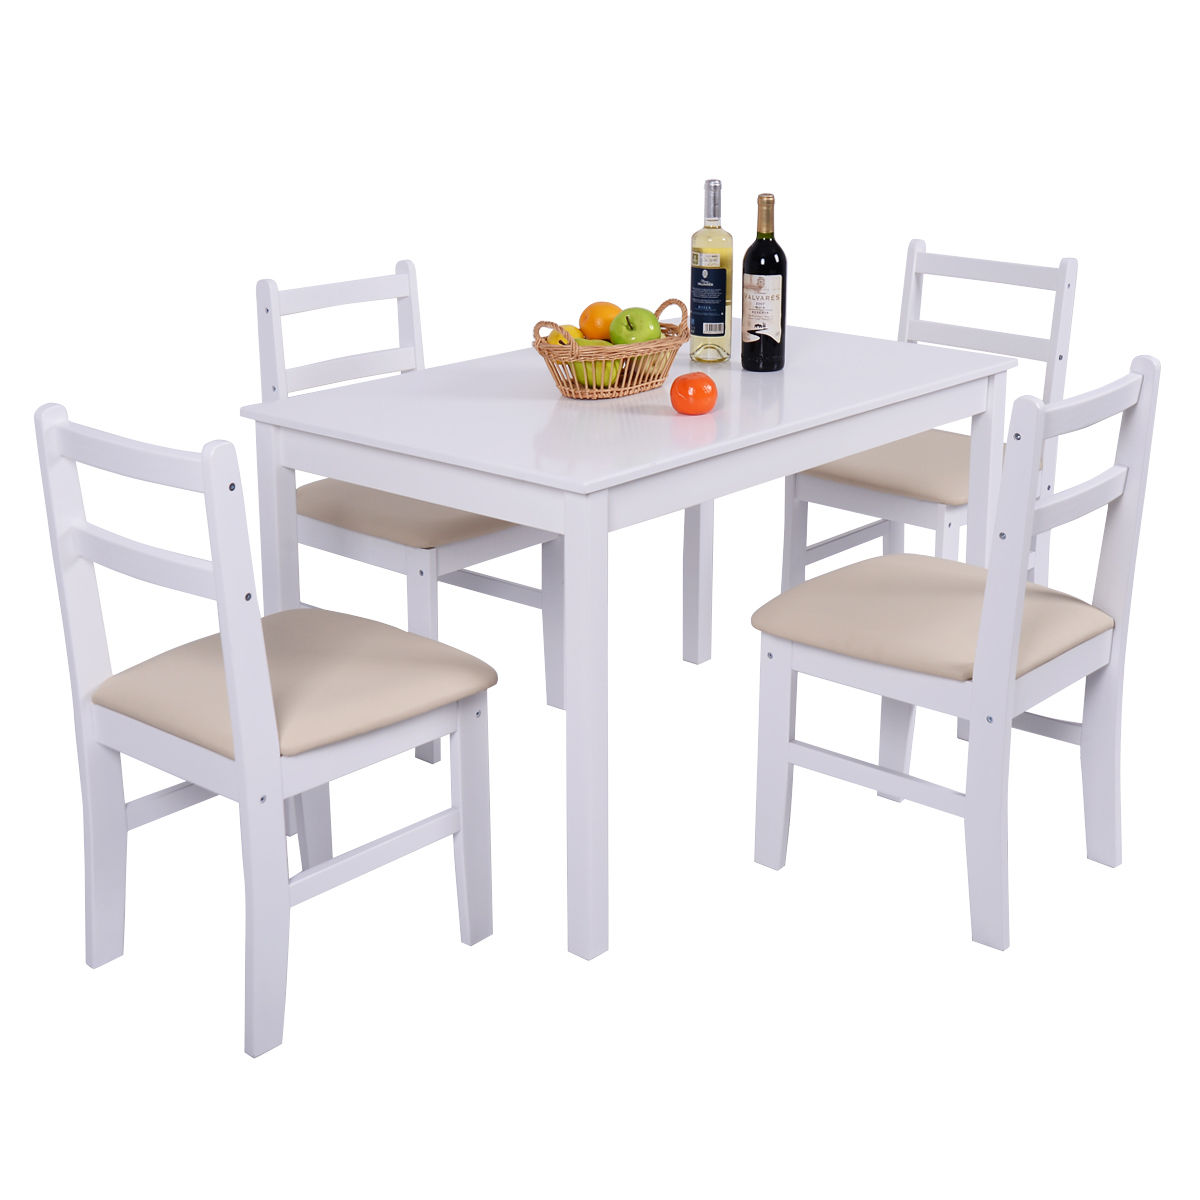 Costway 5 Pcs Pine Wood Dining Table Set 4 Upholstered Chair Breakfast Kitchen Furniture by Costway